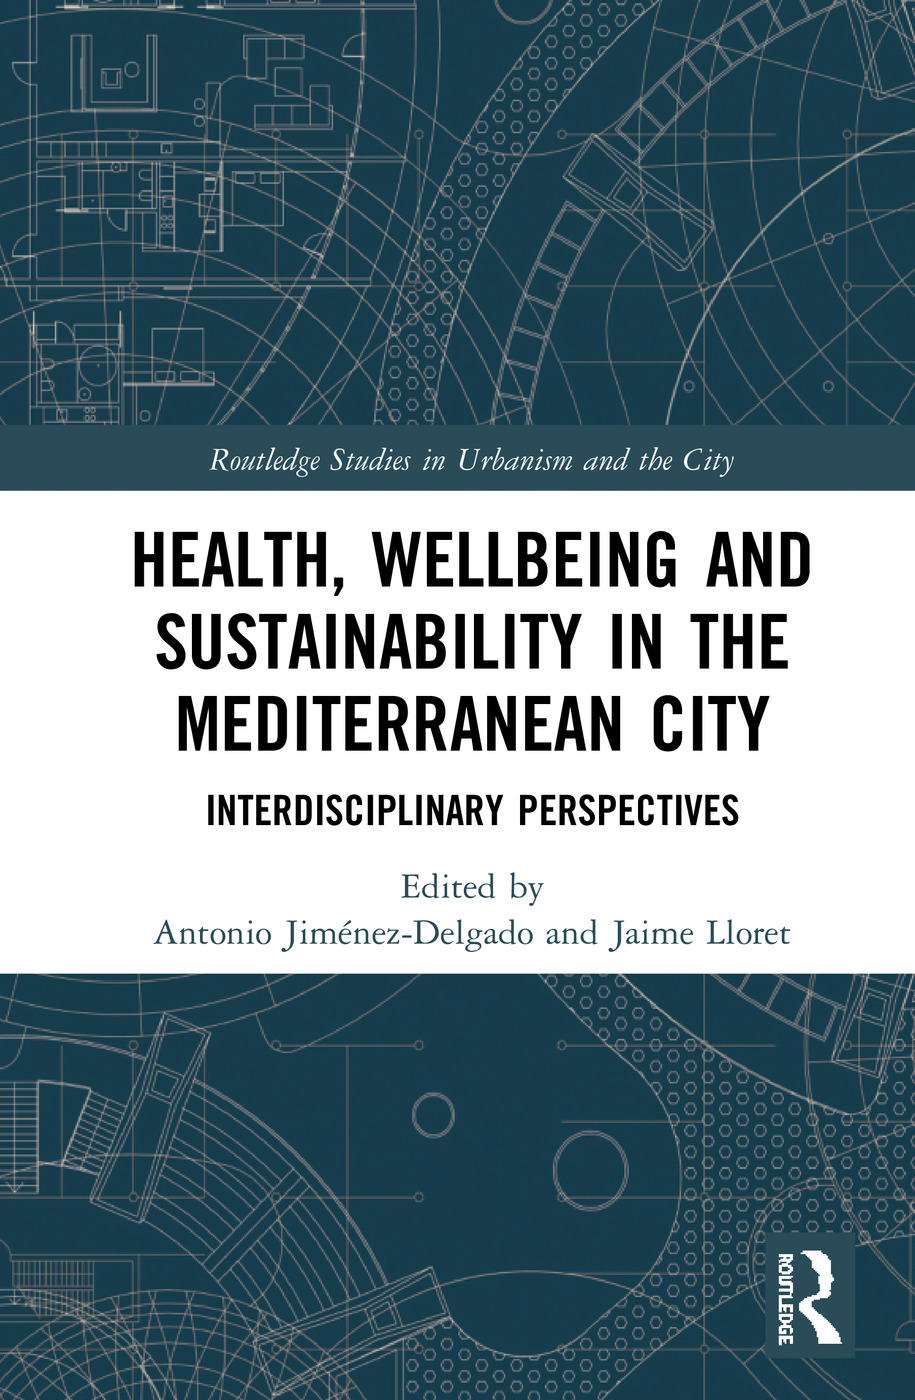 Health, Wellbeing and Sustainability in the Mediterranean City: Interdisciplinary Perspectives book cover